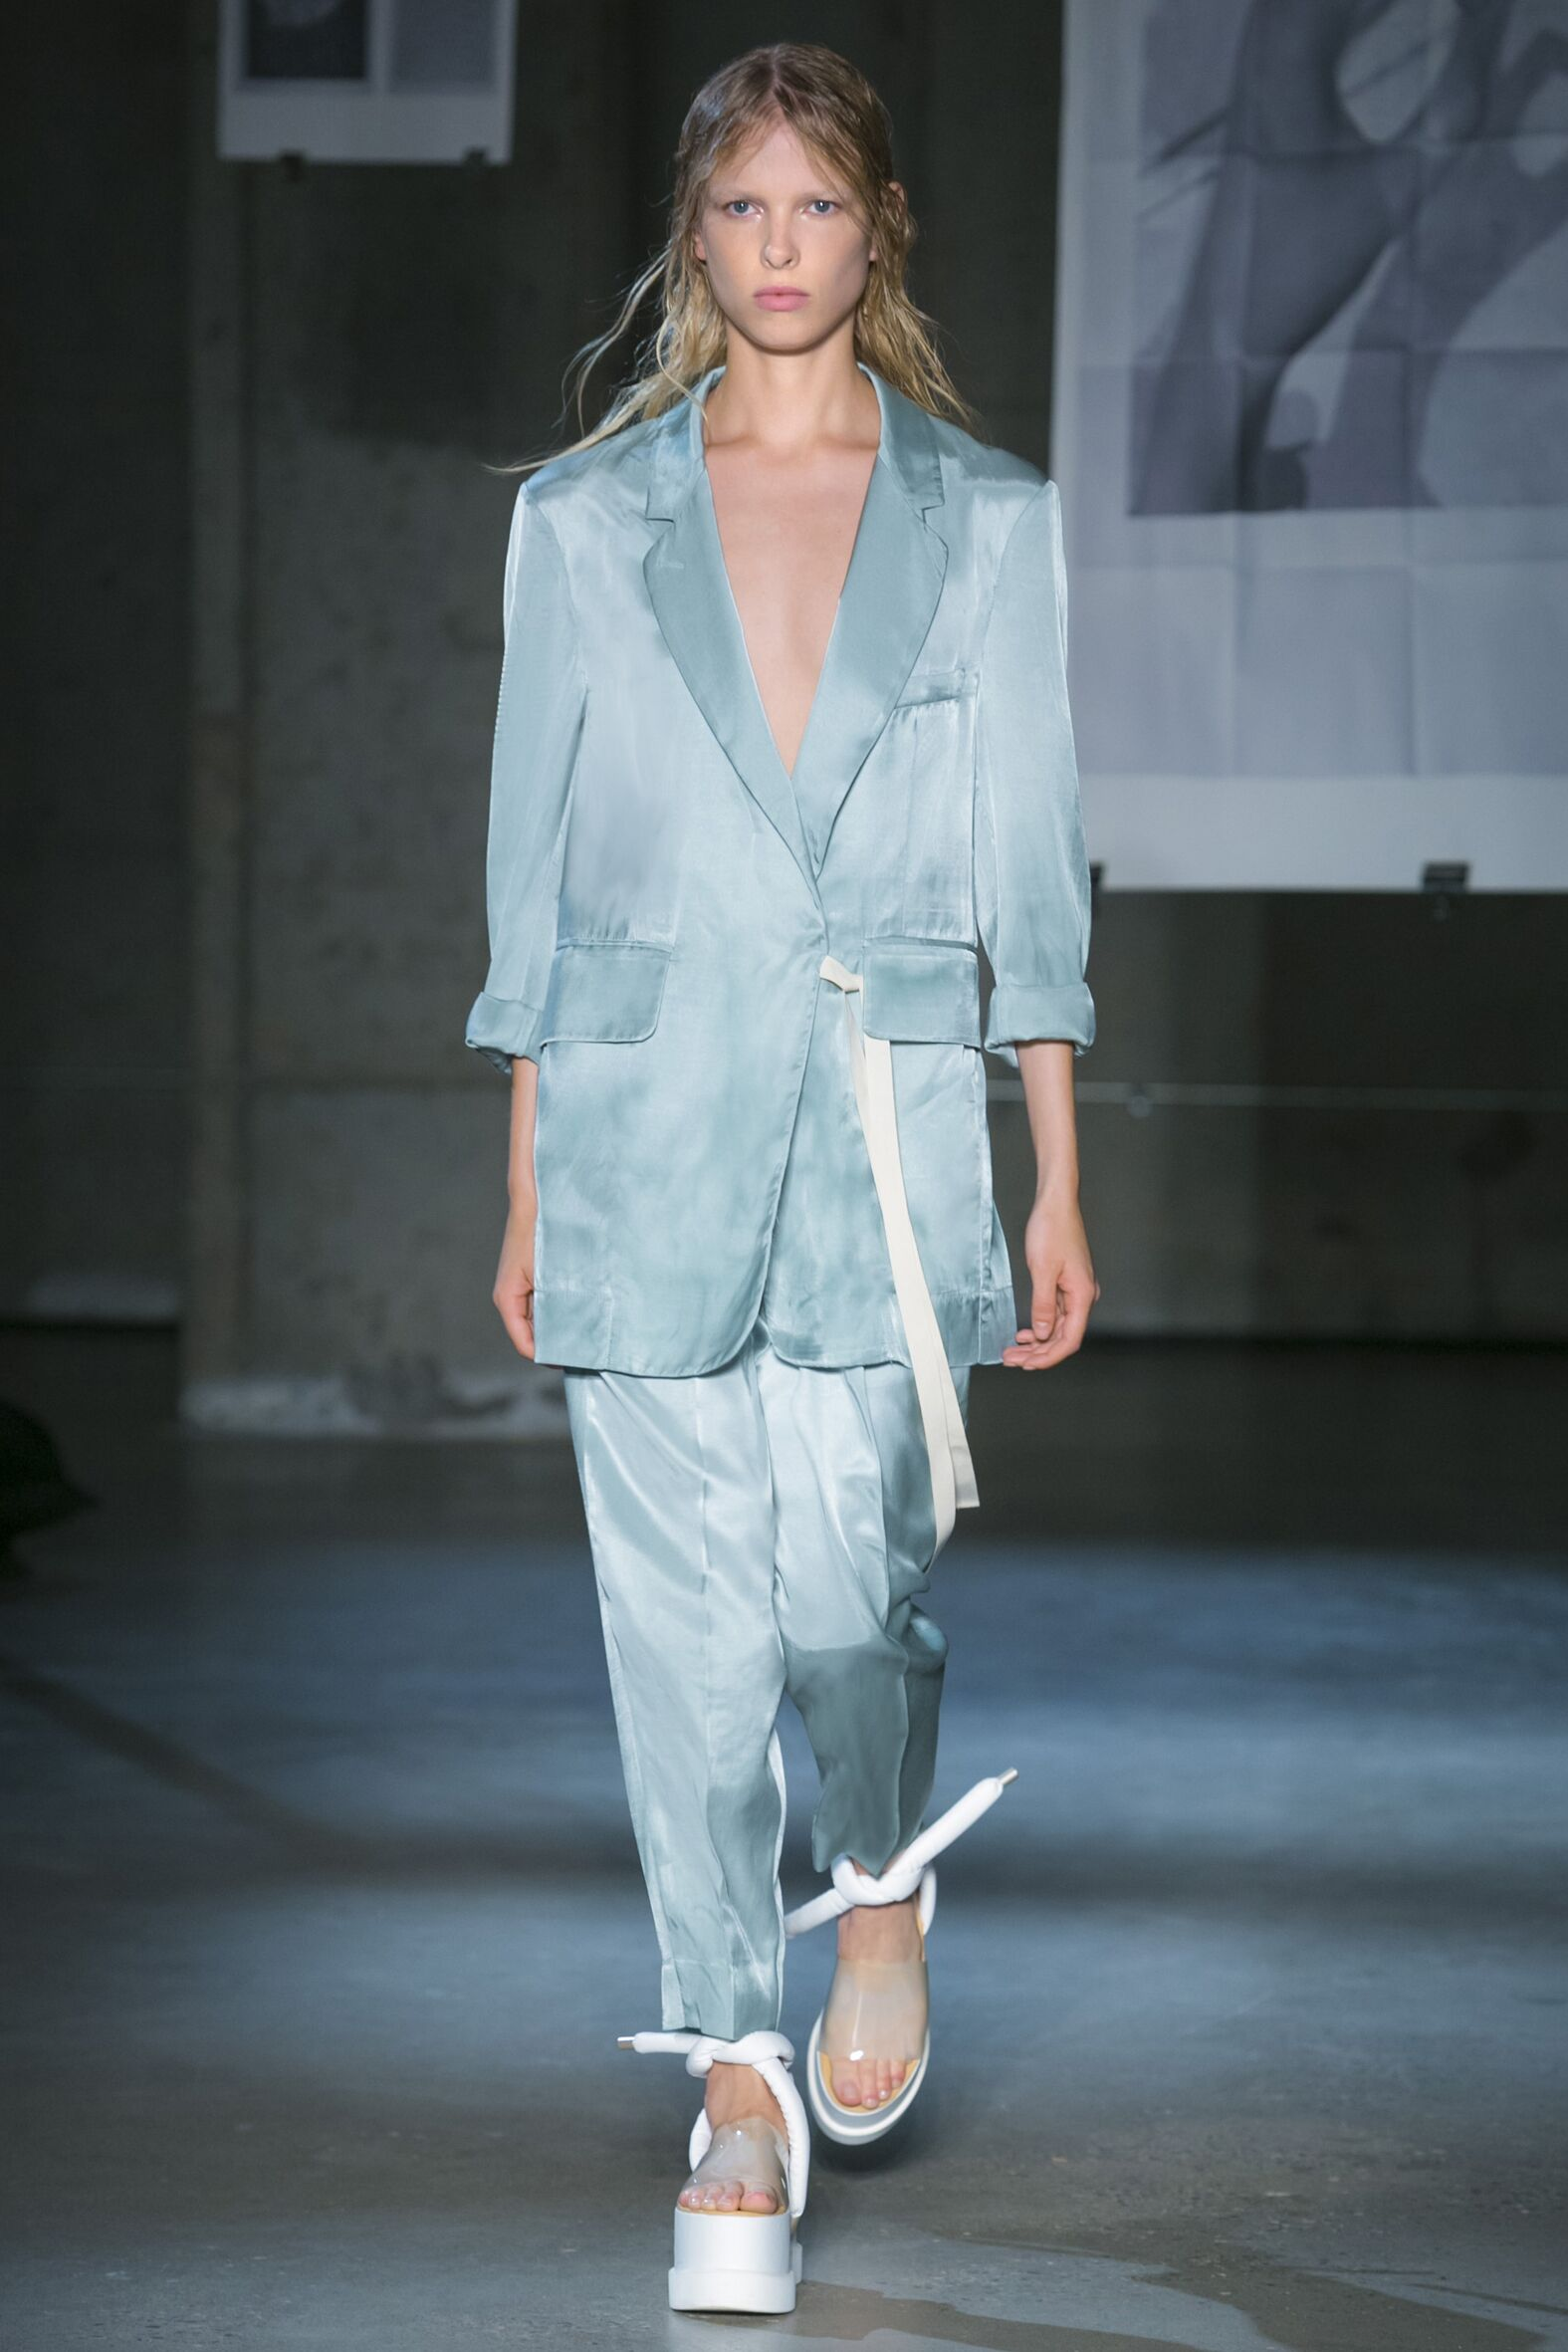 De Haute Qualite MM6 MAISON MARTIN MARGIELA SPRING SUMMER 2015 WOMENu0027S COLLECTION U2013 NEW YORK  FASHION WEEK